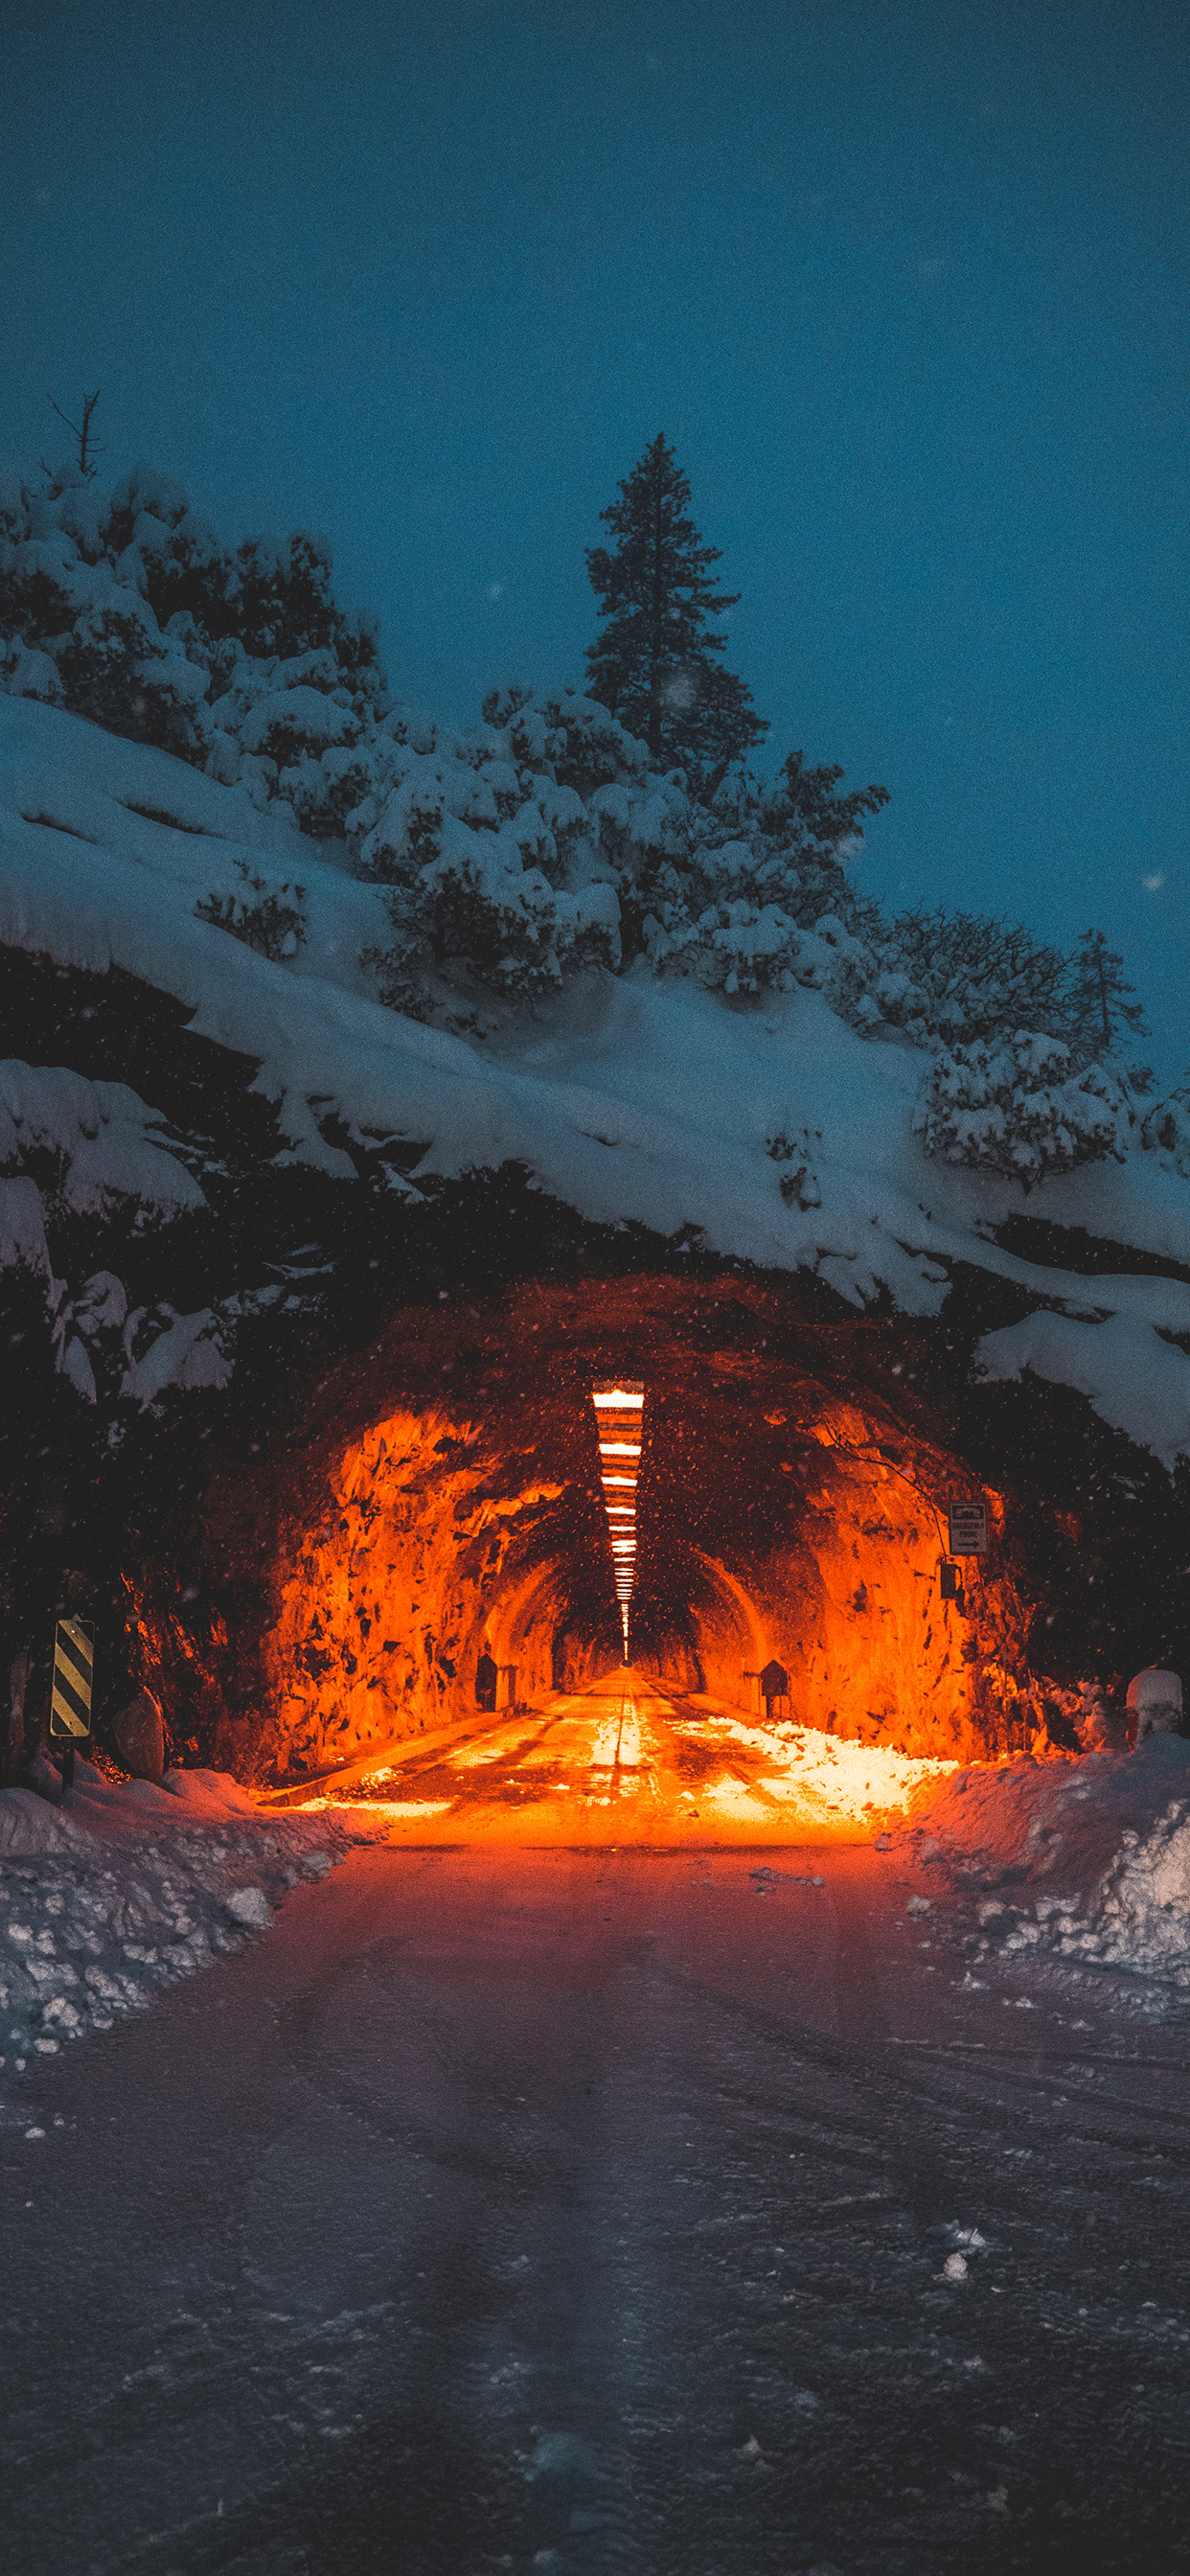 iPhone wallpapers tunnel yosemite valley Fonds d'écran iPhone du 31/05/2019